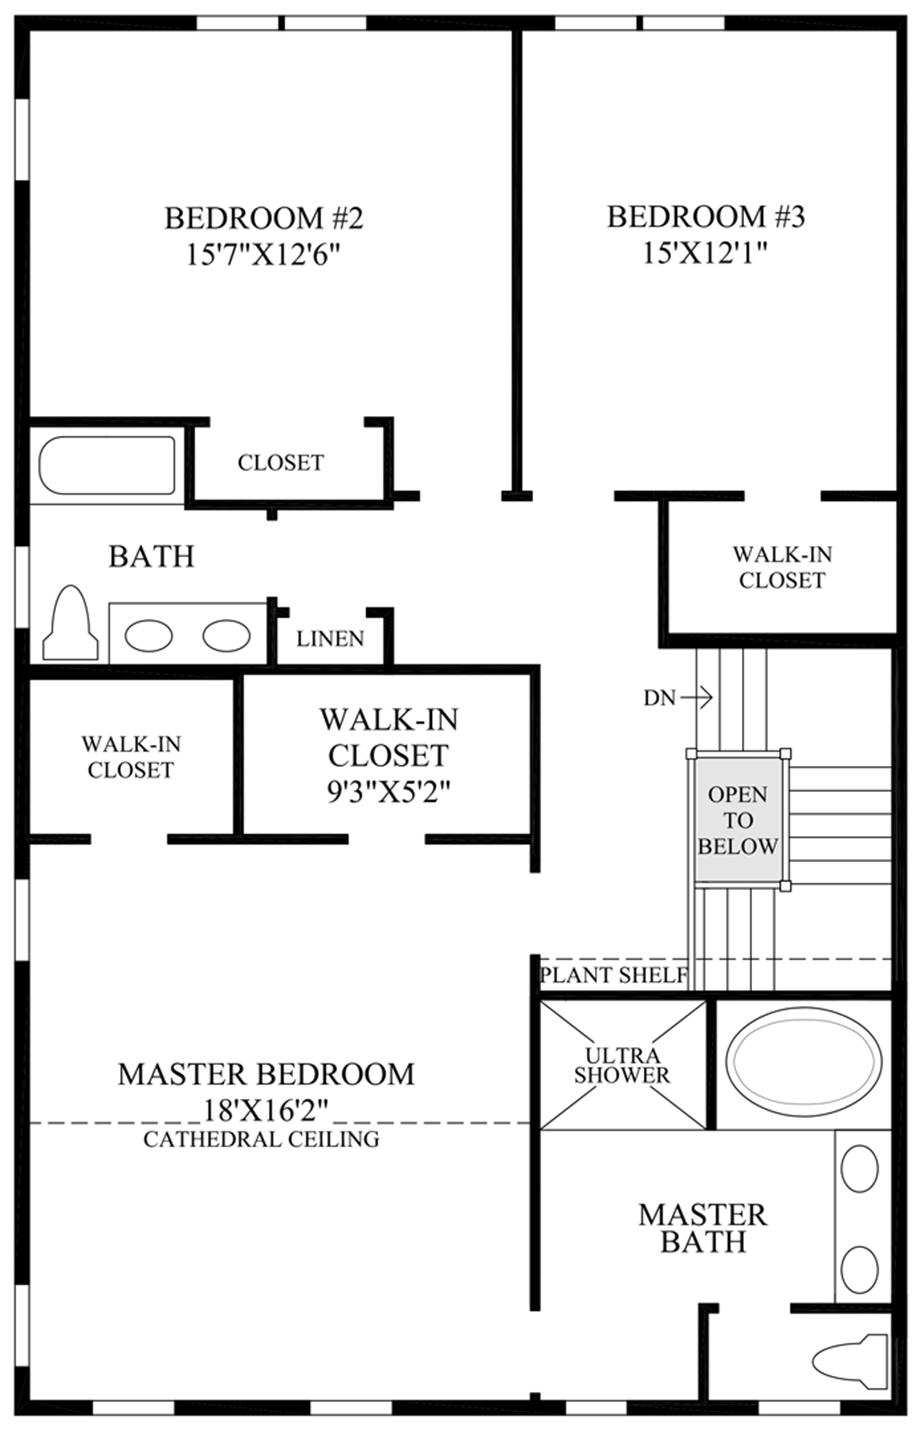 Optional Ultra Shower Floor Plan